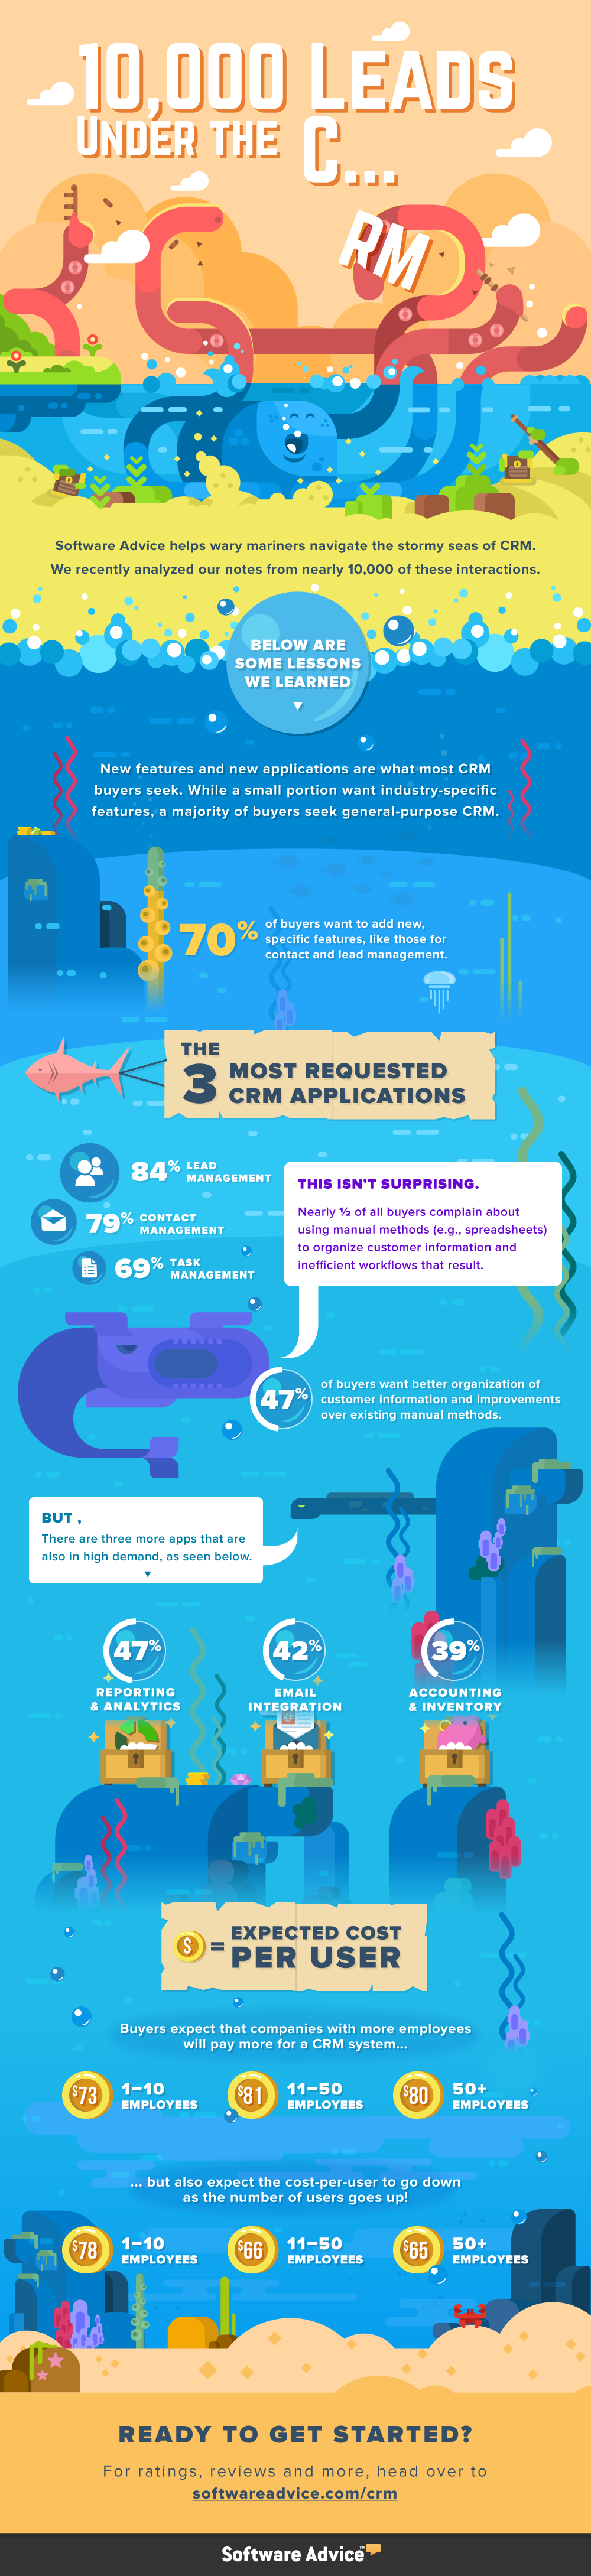 crm leads infographic